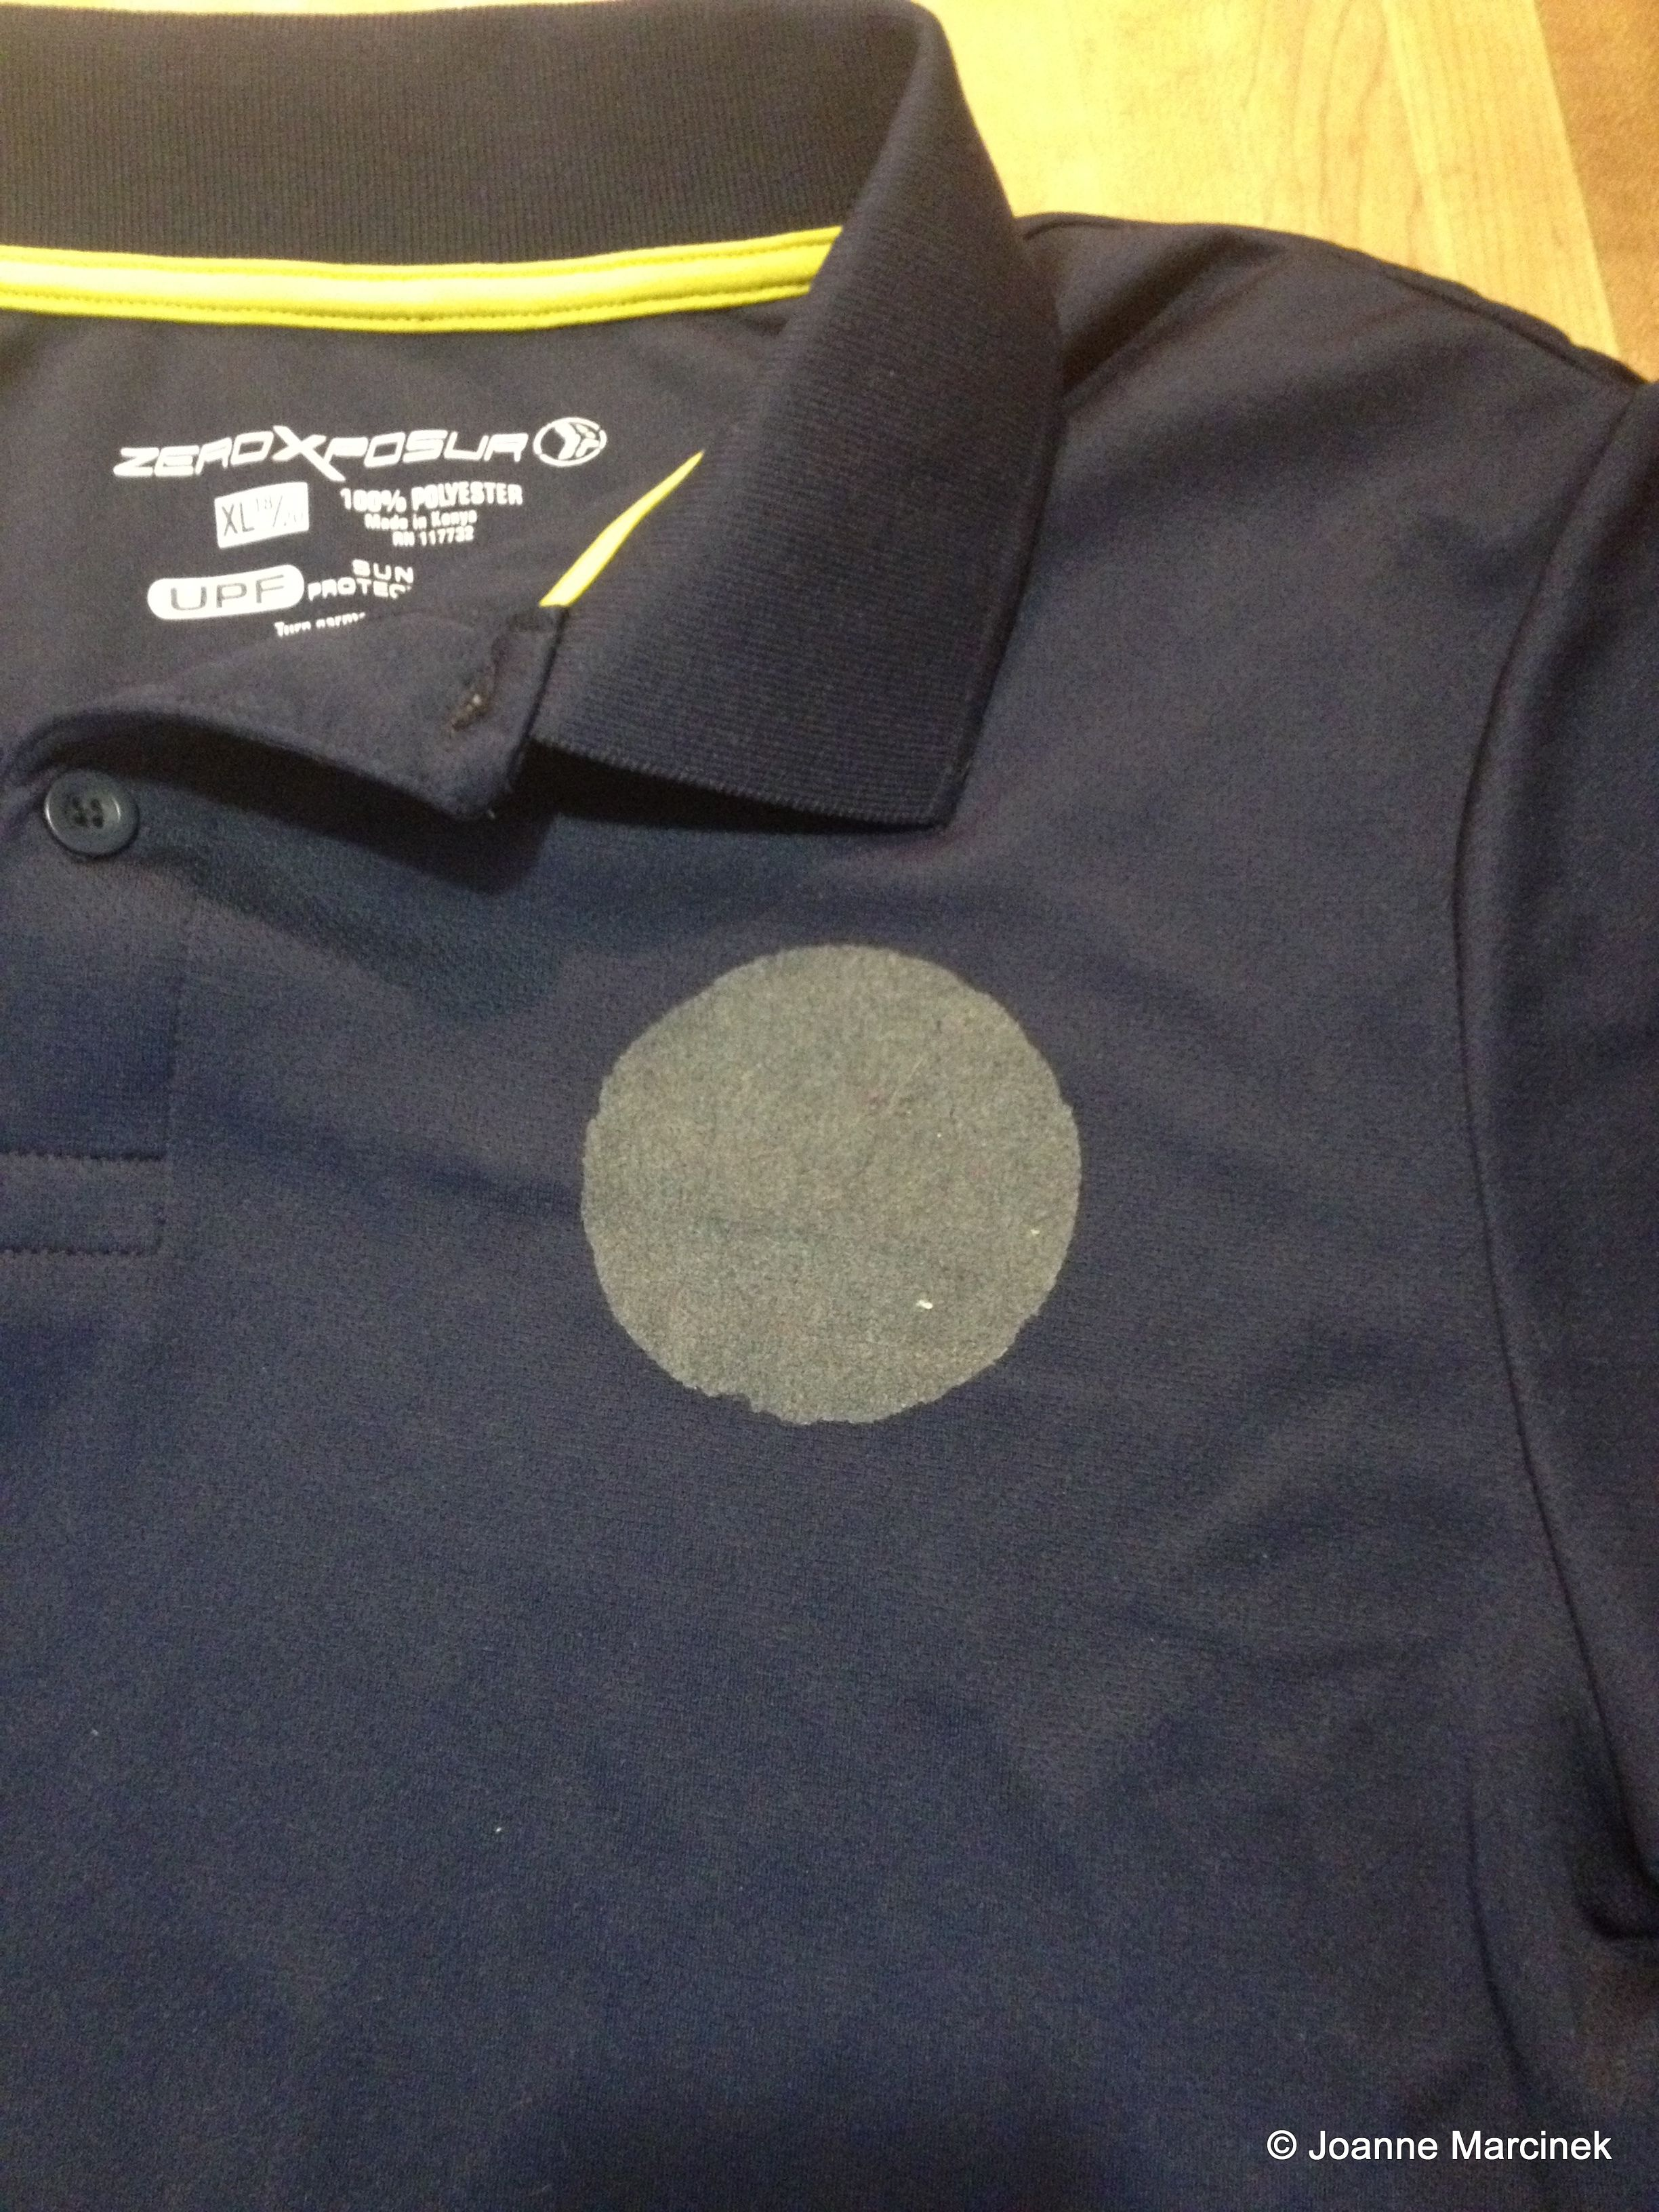 b3f68aa591eb9d55747ba7cf426a0d62 - How To Get A Sticker Glue Off Of Clothing